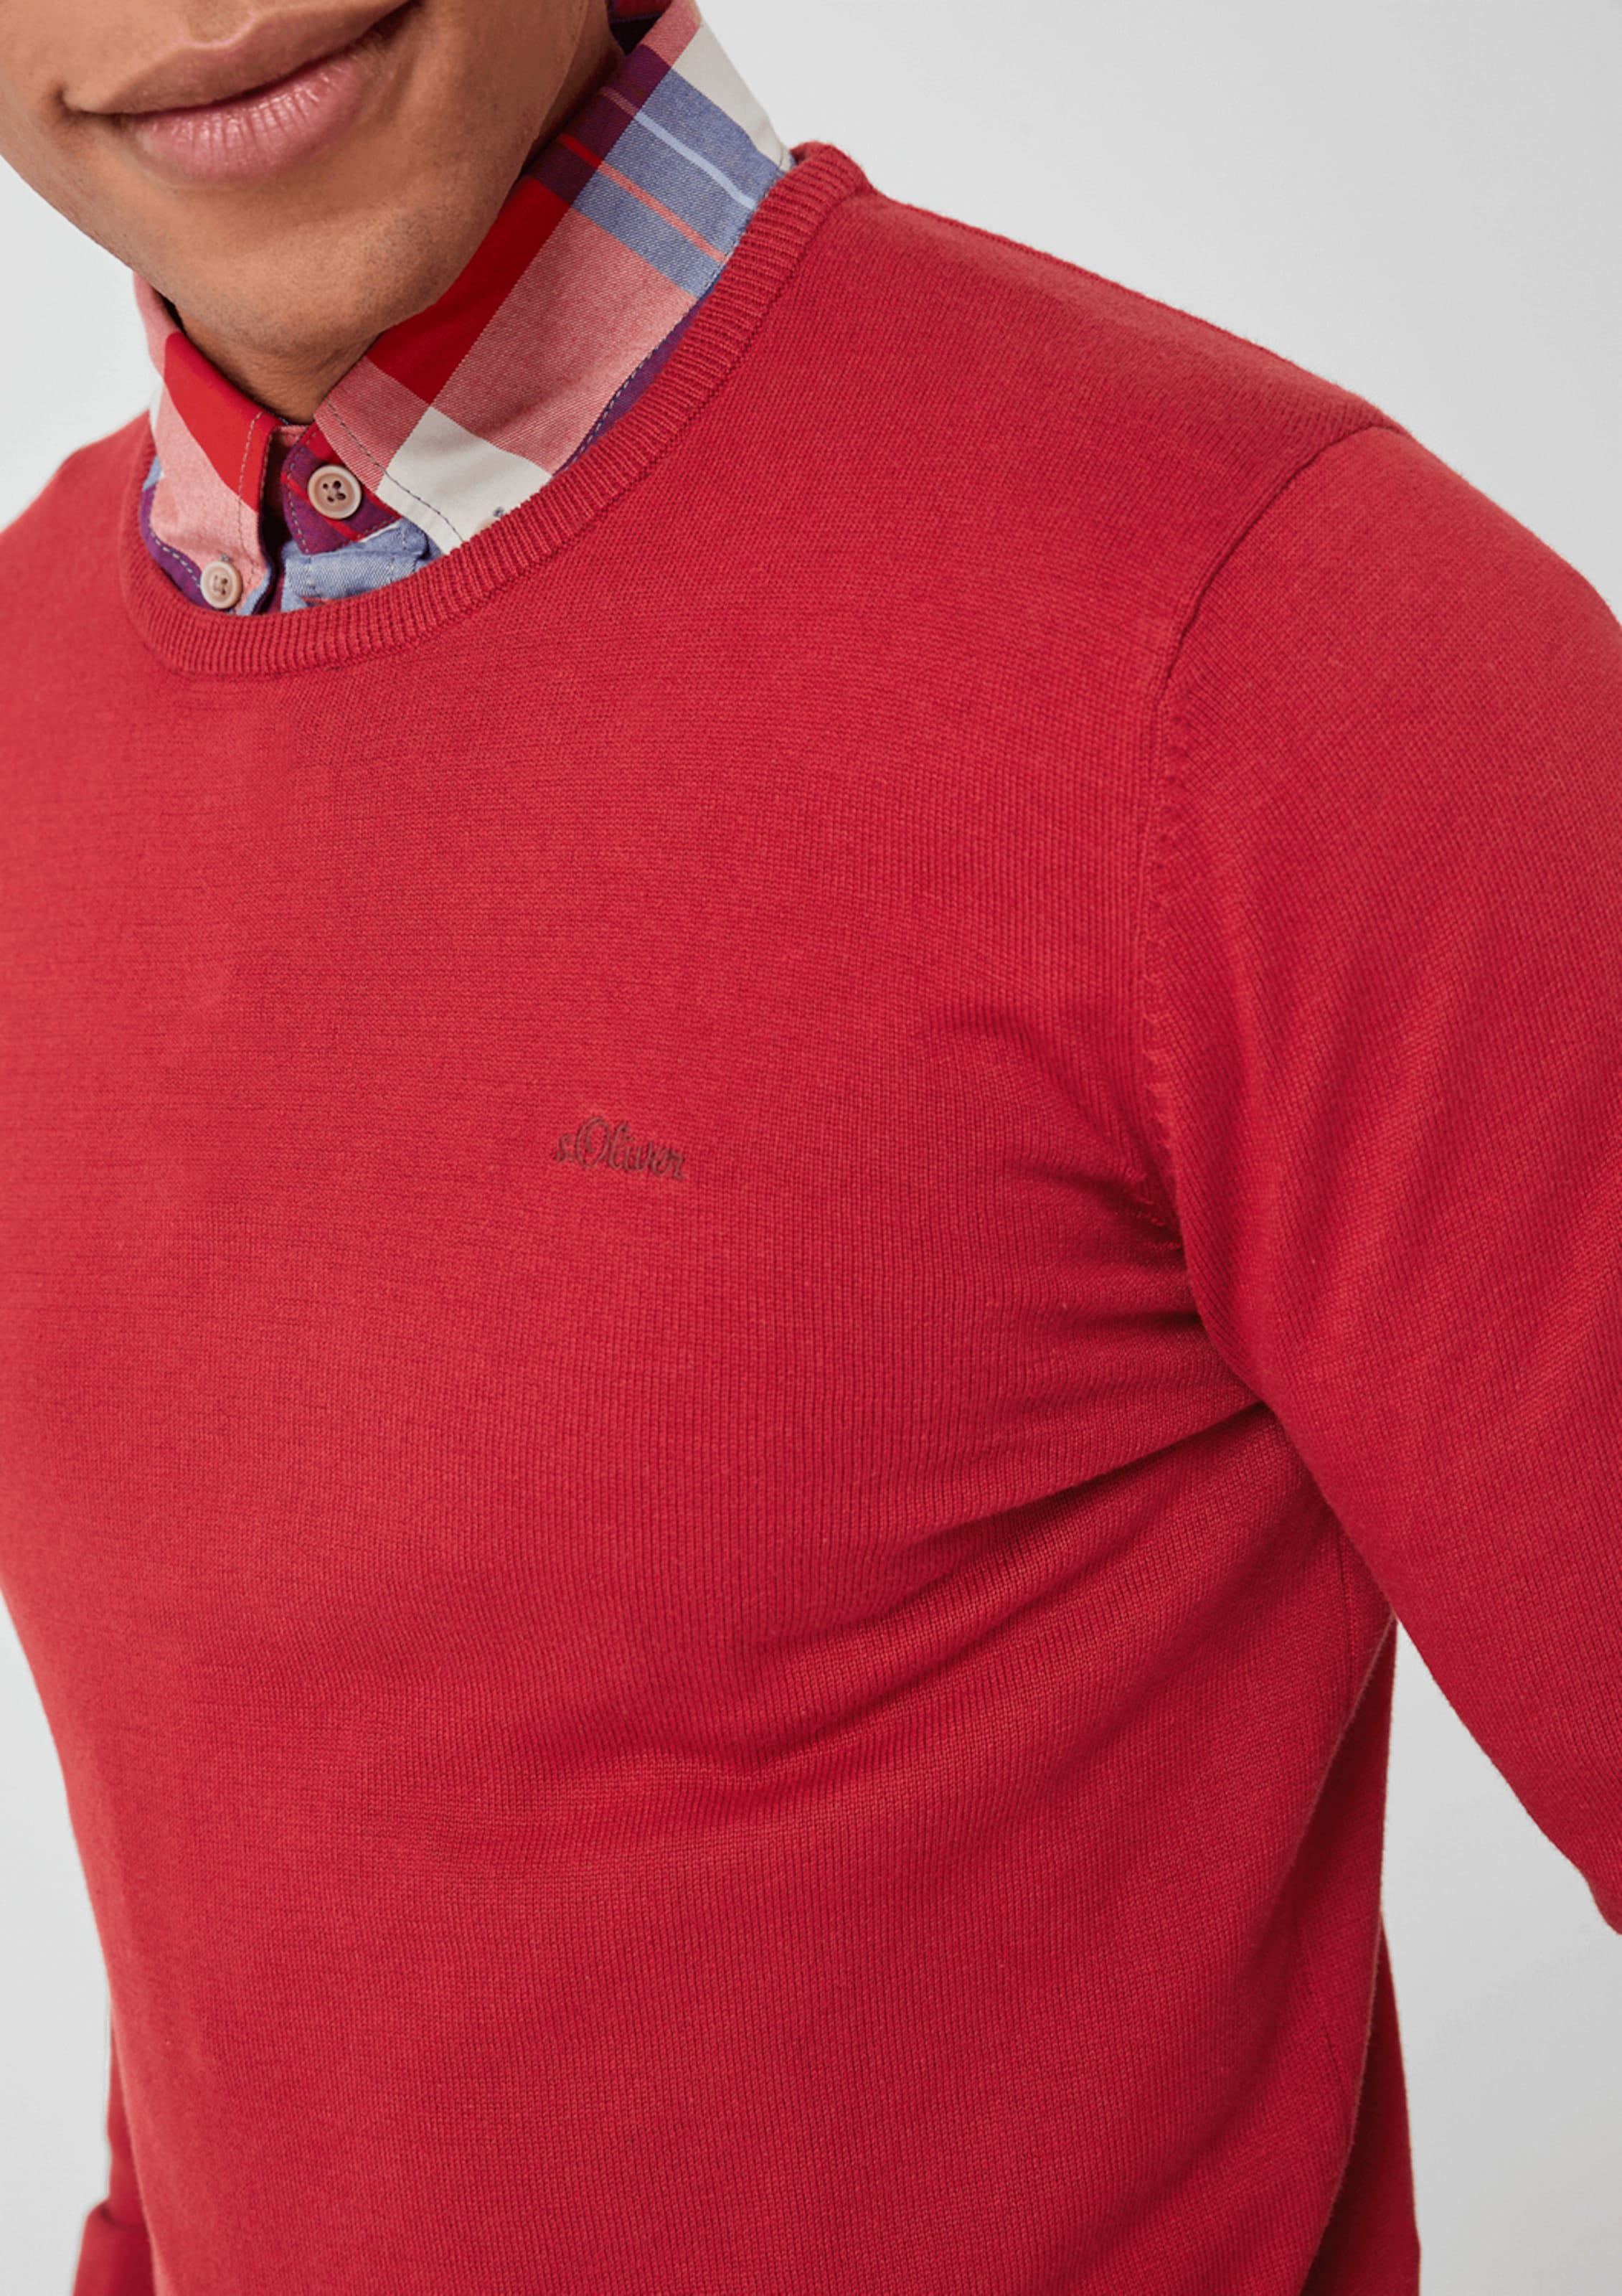 S Rot oliver Pullover Mit Crew Neck Red In Label Y7ybf6vg